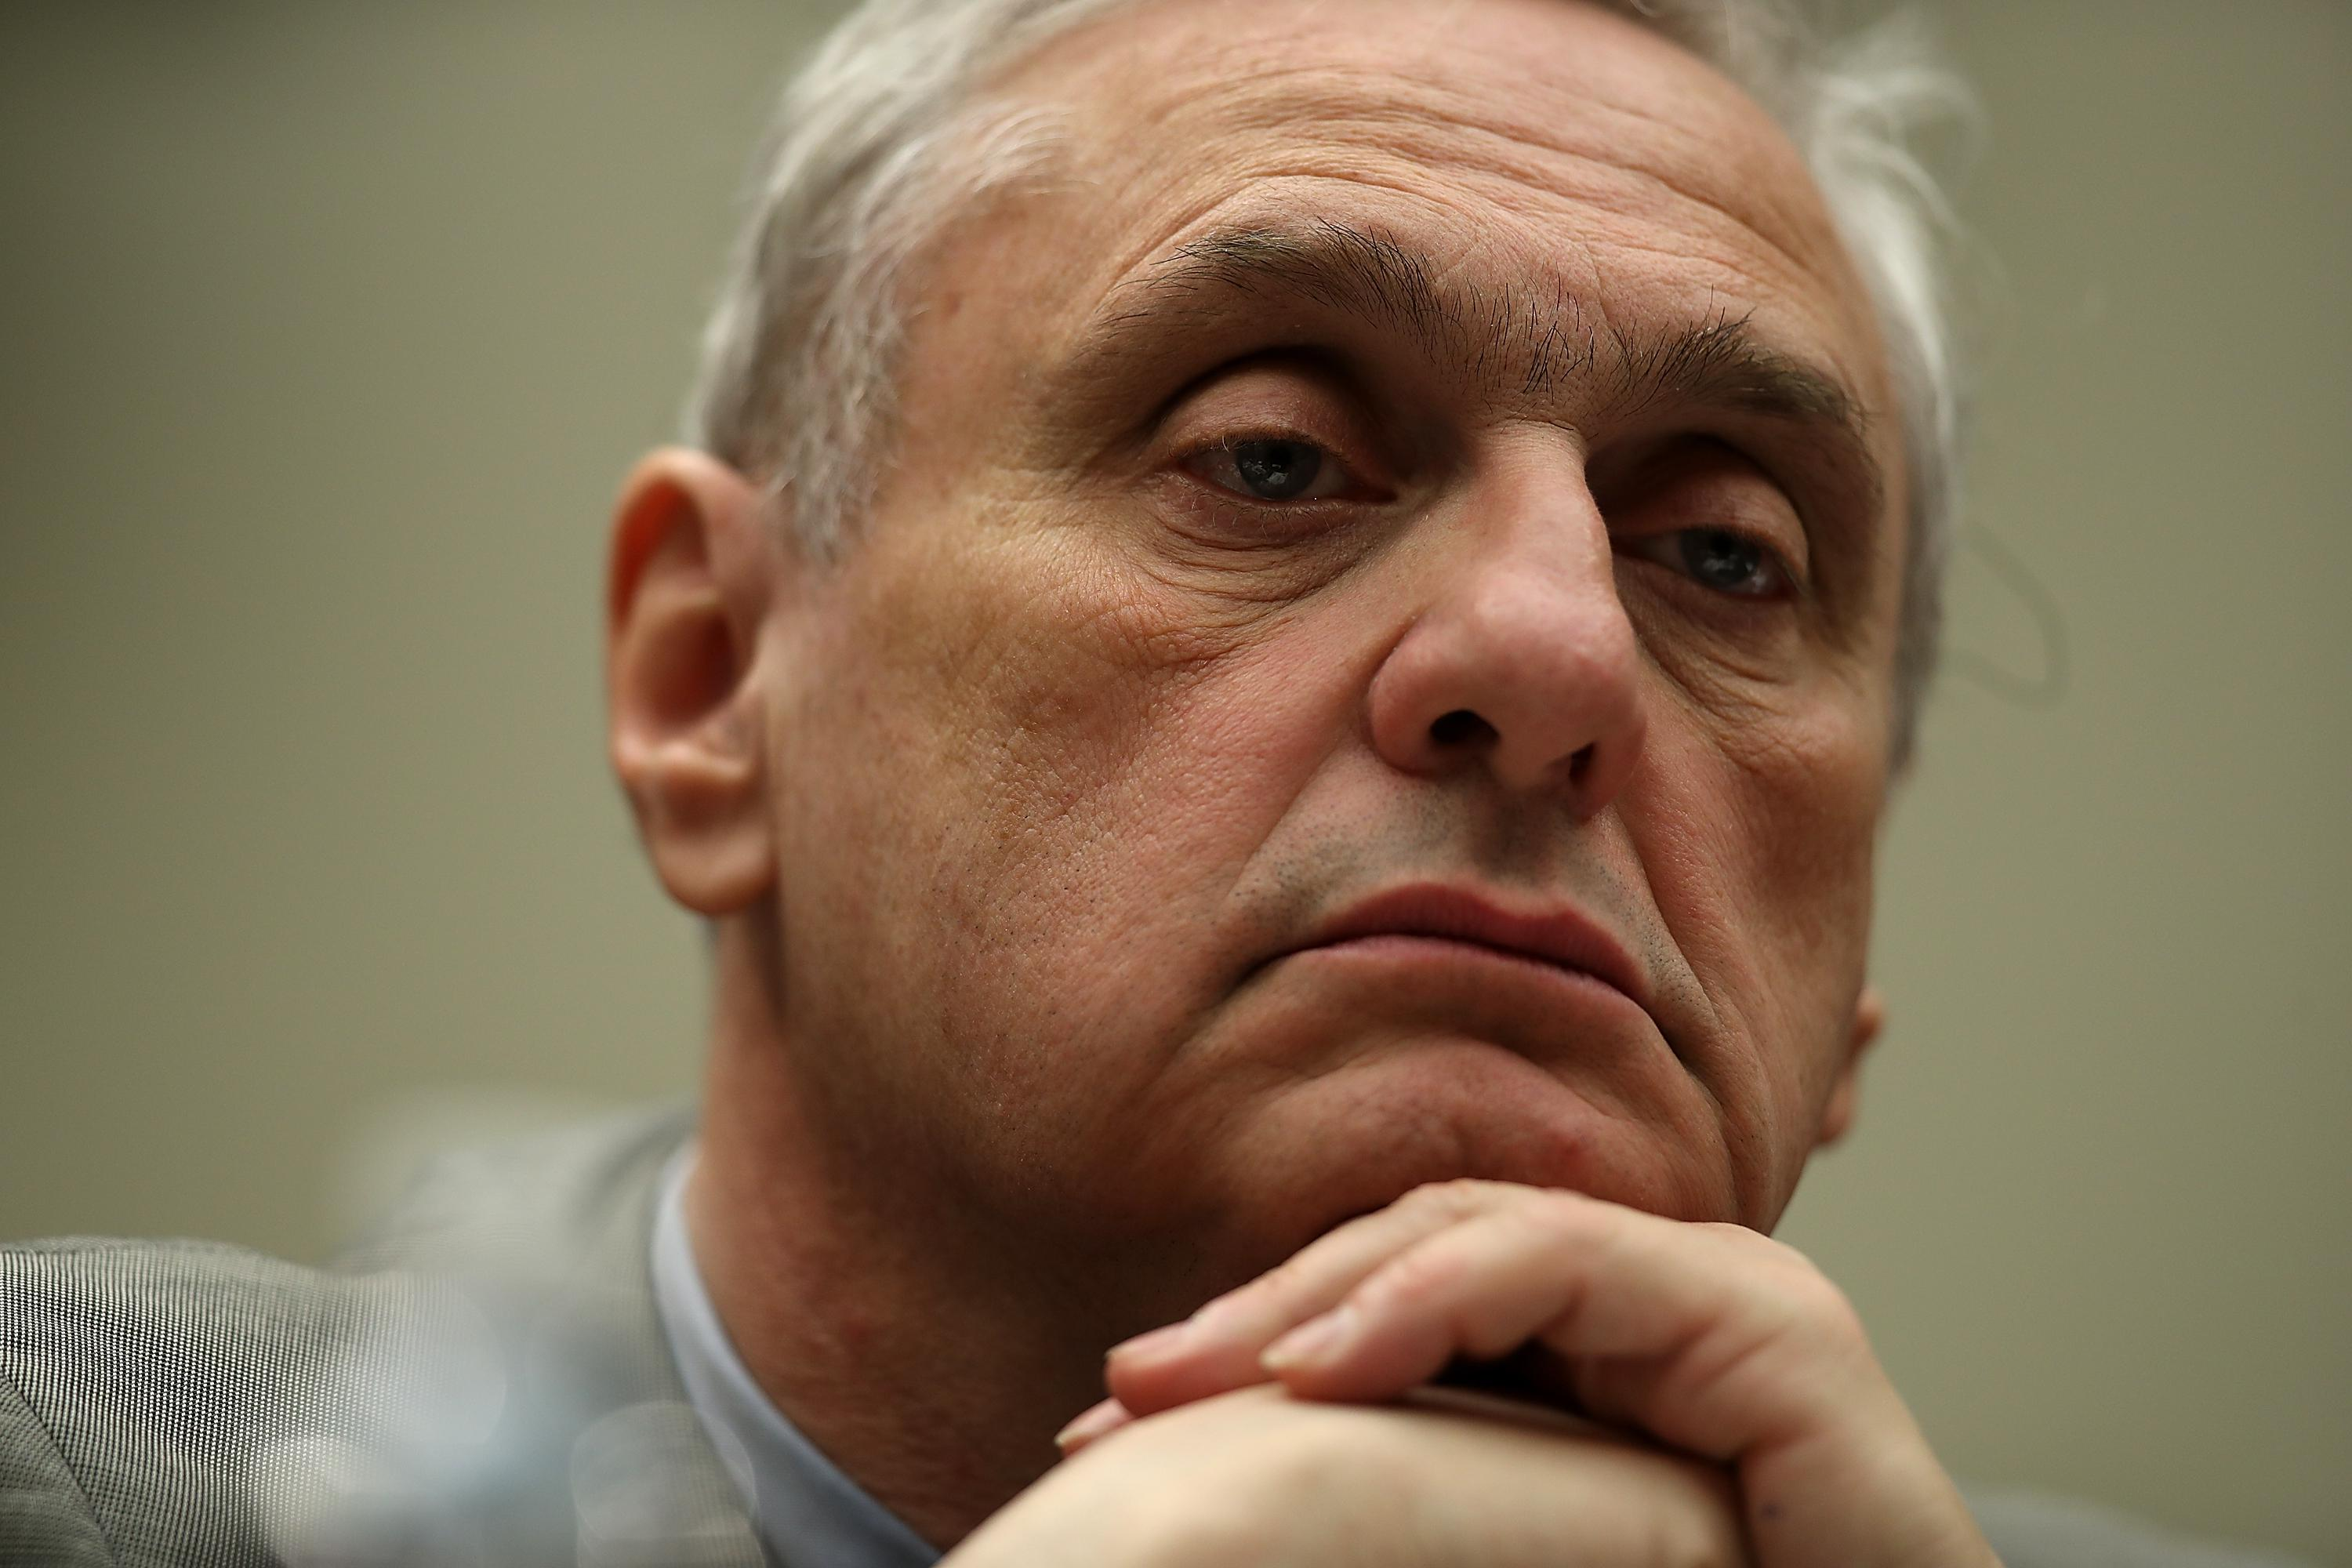 Ninth Circuit Appeals Court Chief Judge Alex Kozinski looks on with his hands on his chin during a House Judiciary Committee hearing.